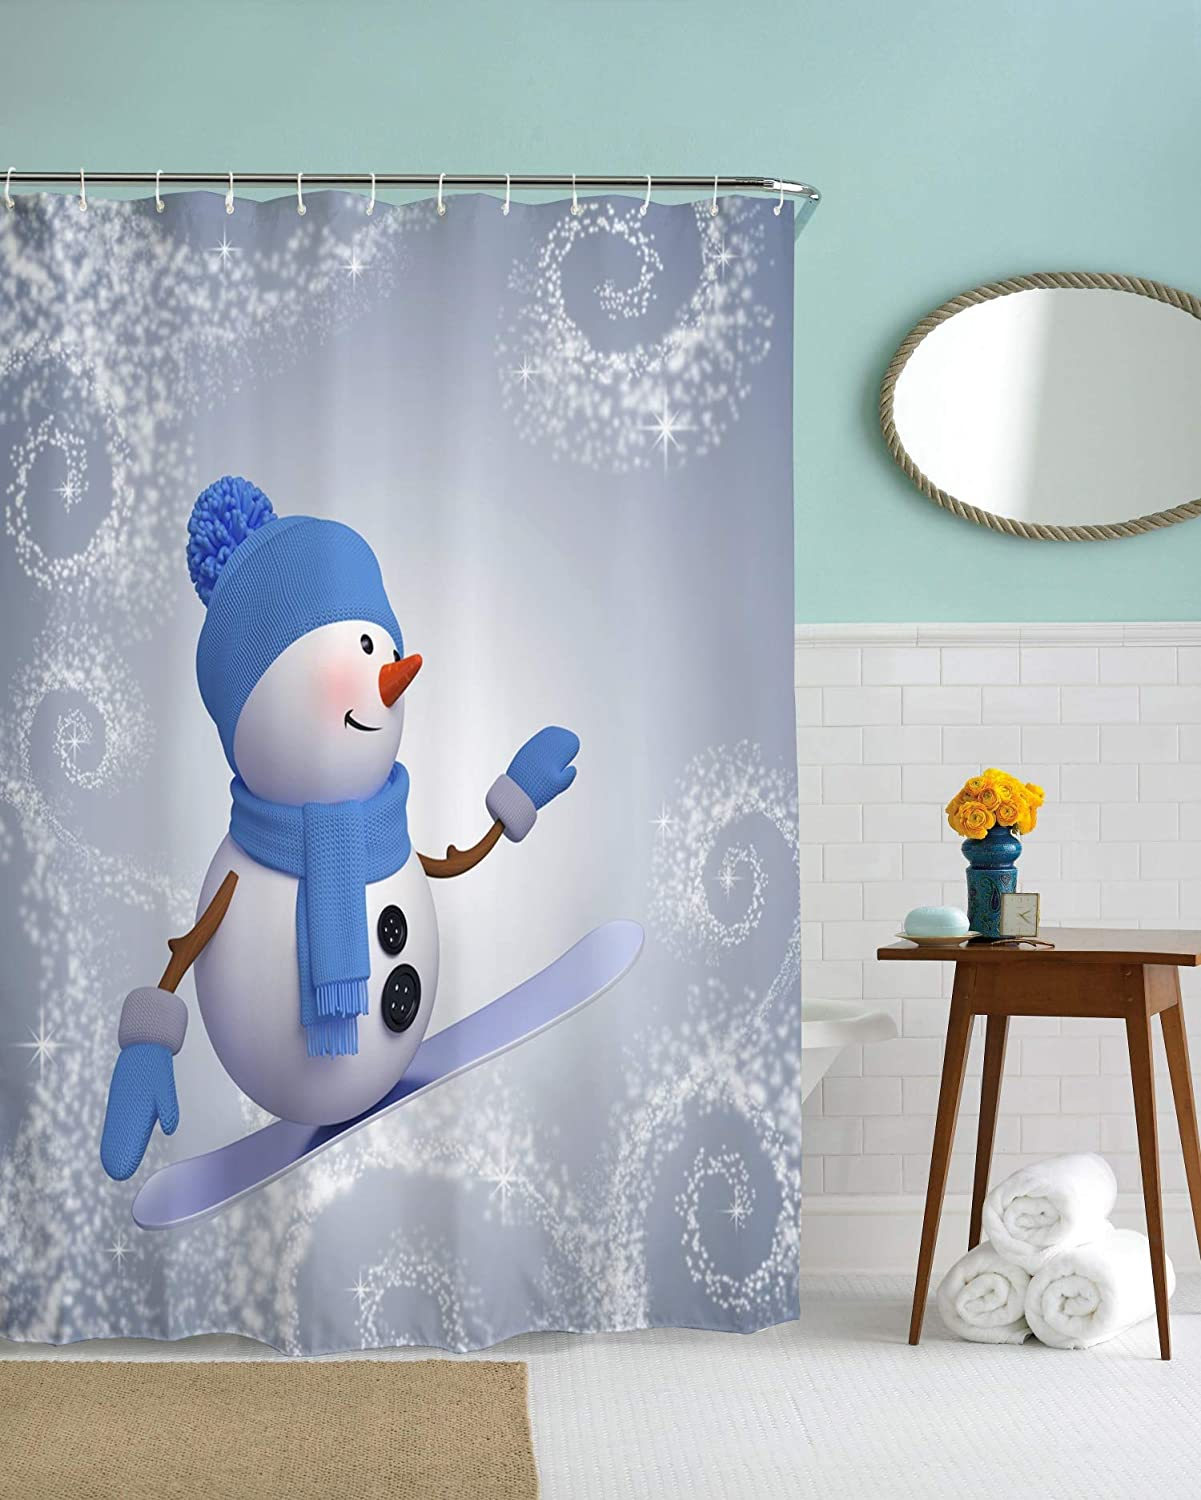 Christmas Shower Curtain Decorations Collection,Winter Holiday Xmas Themed House Decor New Year Ornaments, Polyester Fabric Bathroom Bath Curtain Set with Hooks (Blue Surfing Snowmen, 60 X 72) 60 X 72) HY